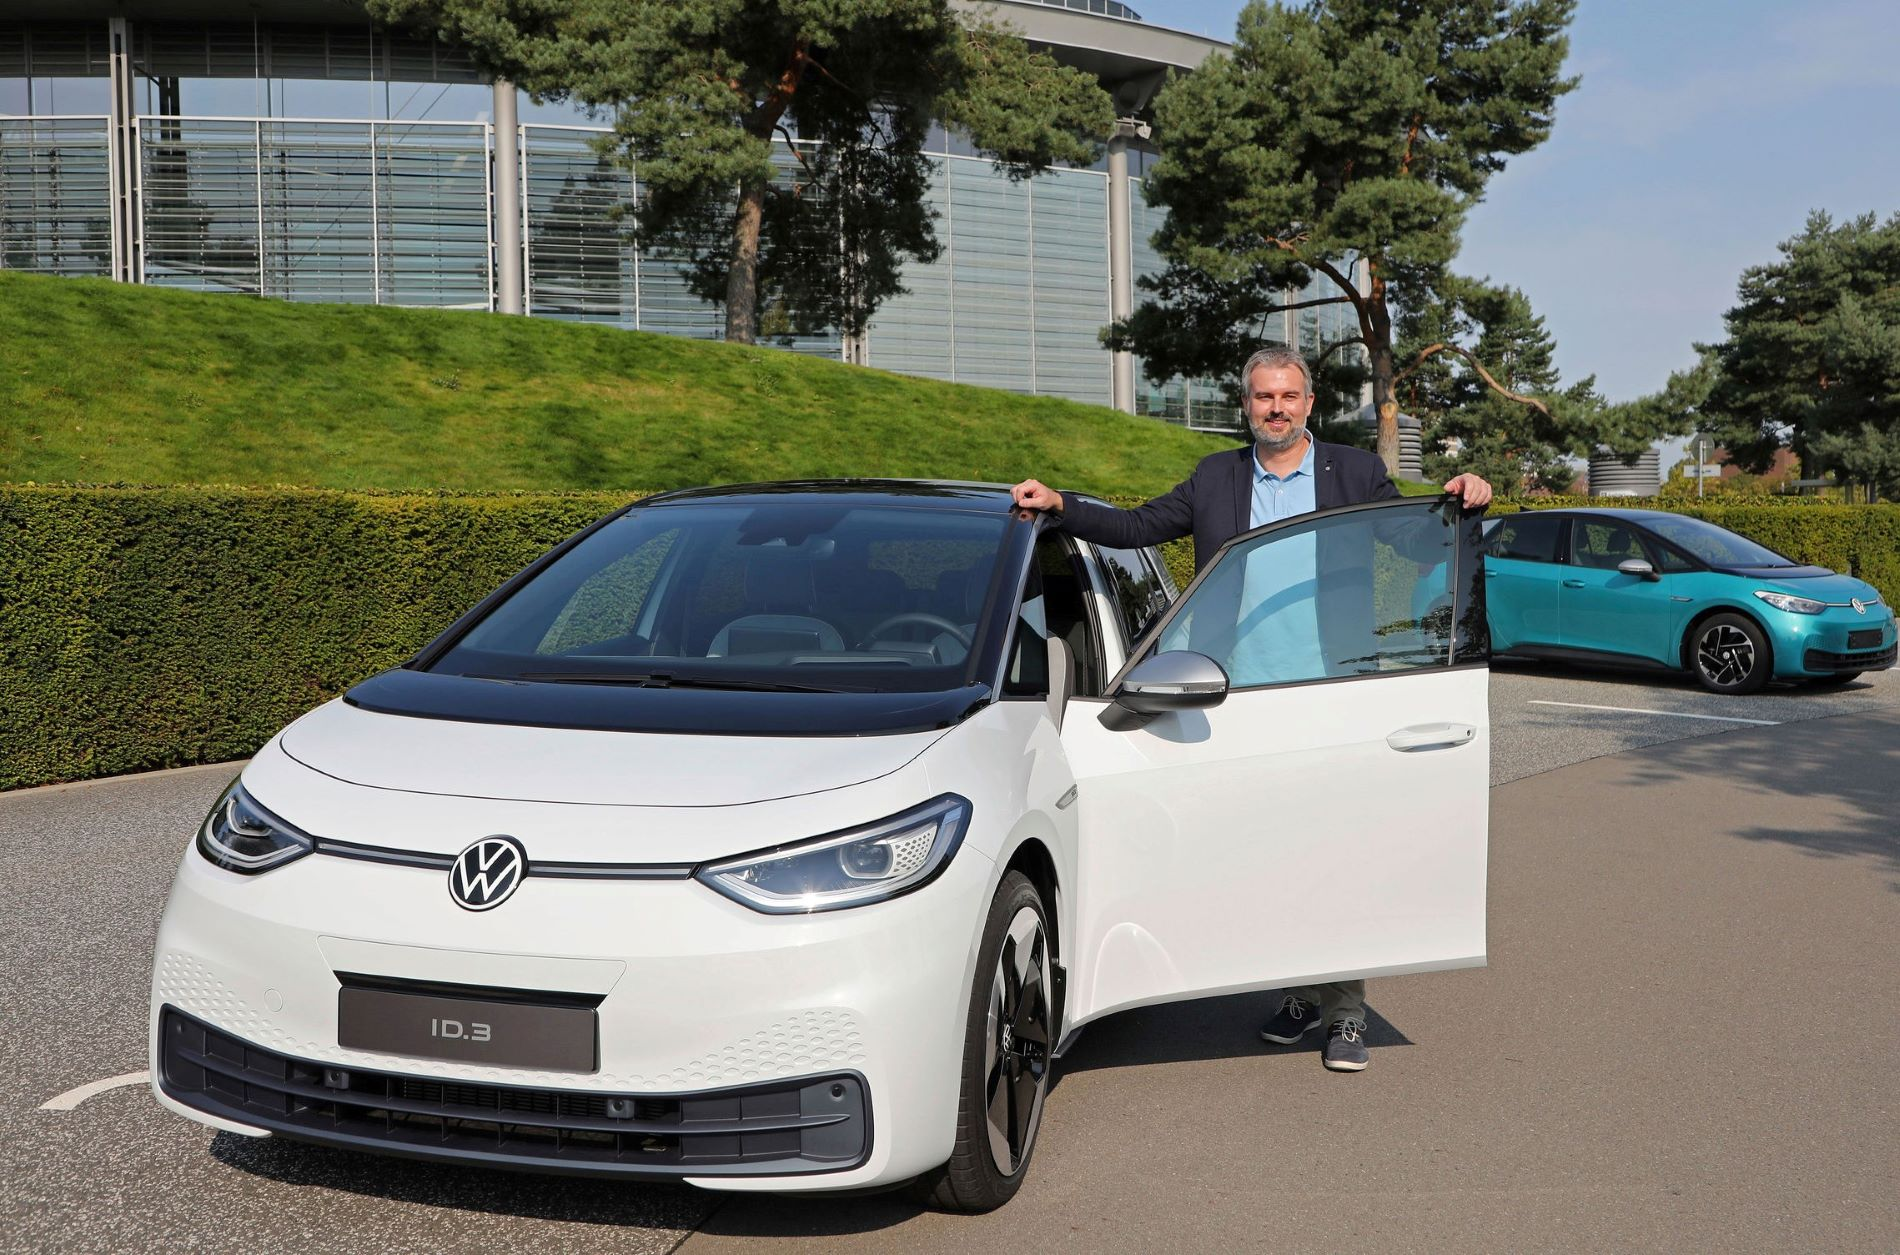 Volkswagen ID 3 Delivery Germany 2